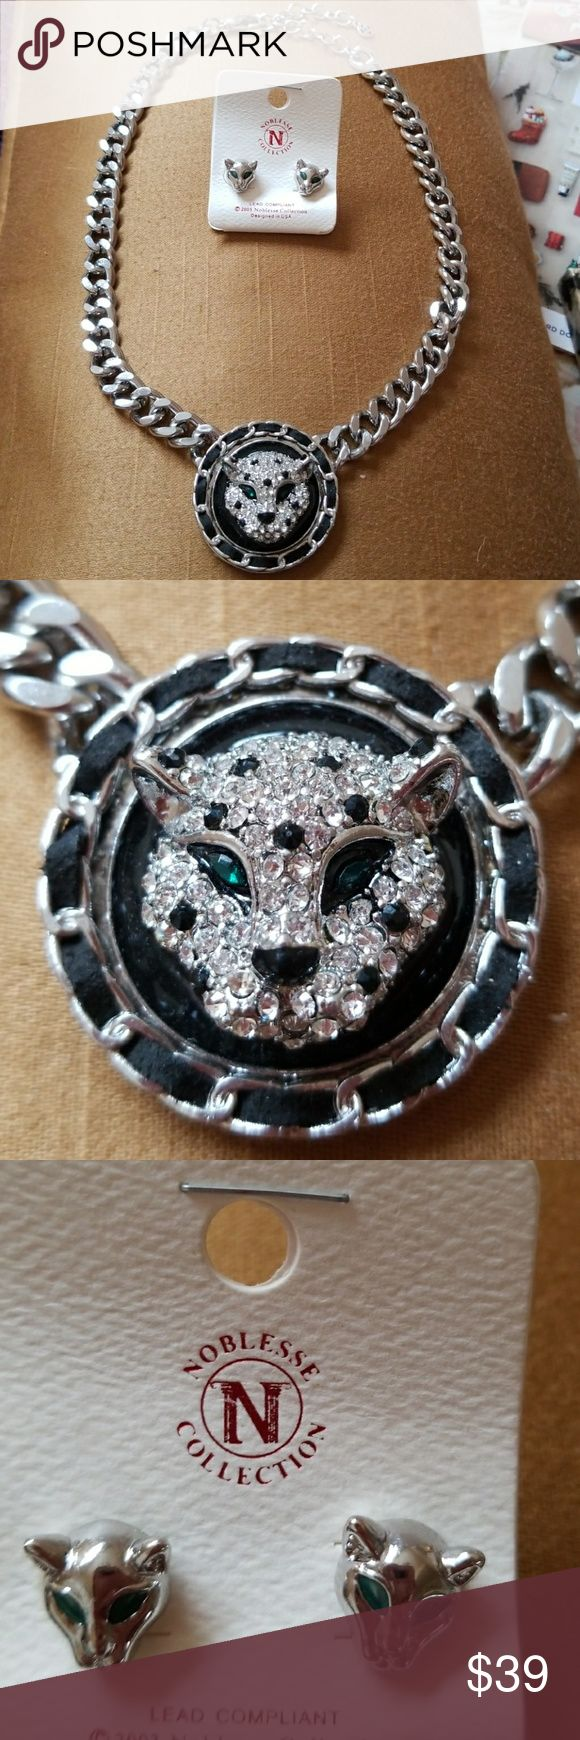 NWOT Panther Necklace and Earring Set Worn by Rhianna, this panther necklace and earring set was also featured on the TV show Empire. Panther head is woven with a piece of suede and has green stone eyes. Great for holiday gift giving. Comes with free gift box. LA Designs Jewelry